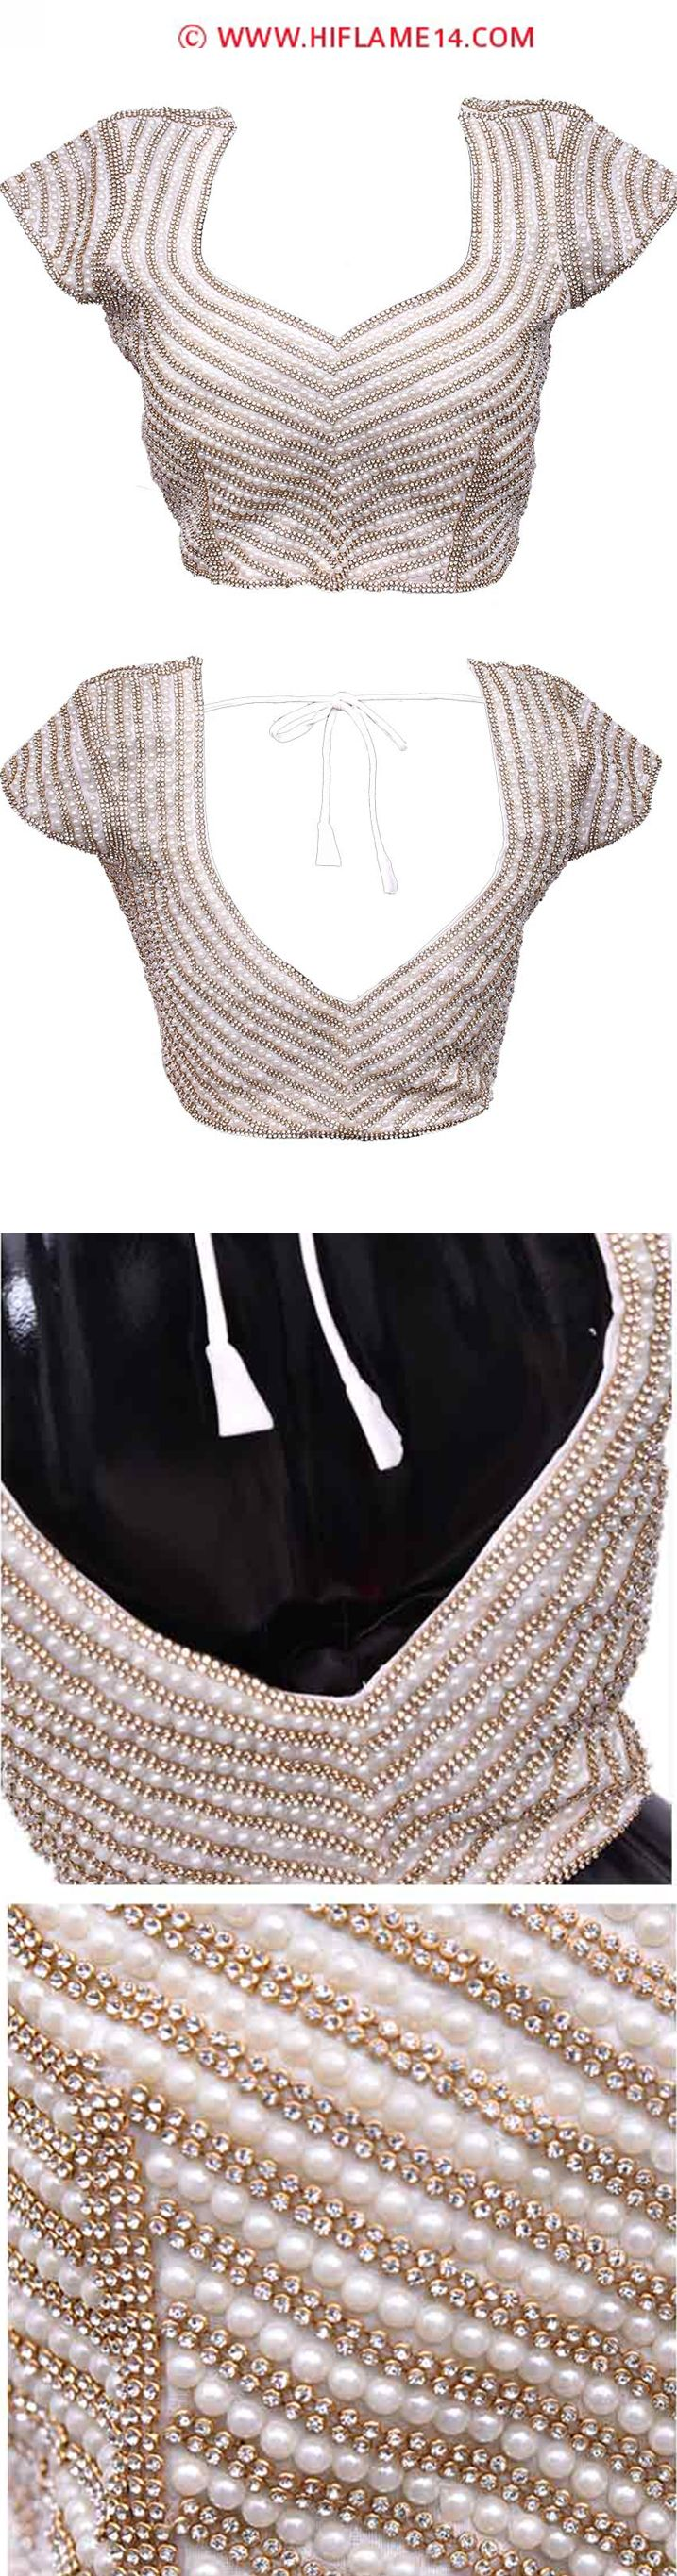 Classy Off White Ready to Wear Blouse   Make a trendy style statement when you adorn this glittering white ready to wear blouse. This off white ready to wear blouse is enhanced with glittering white stones and pearls with a unique pattern neck. Pair this unique collection for your evening and cocktail parties and rock in your occasion.